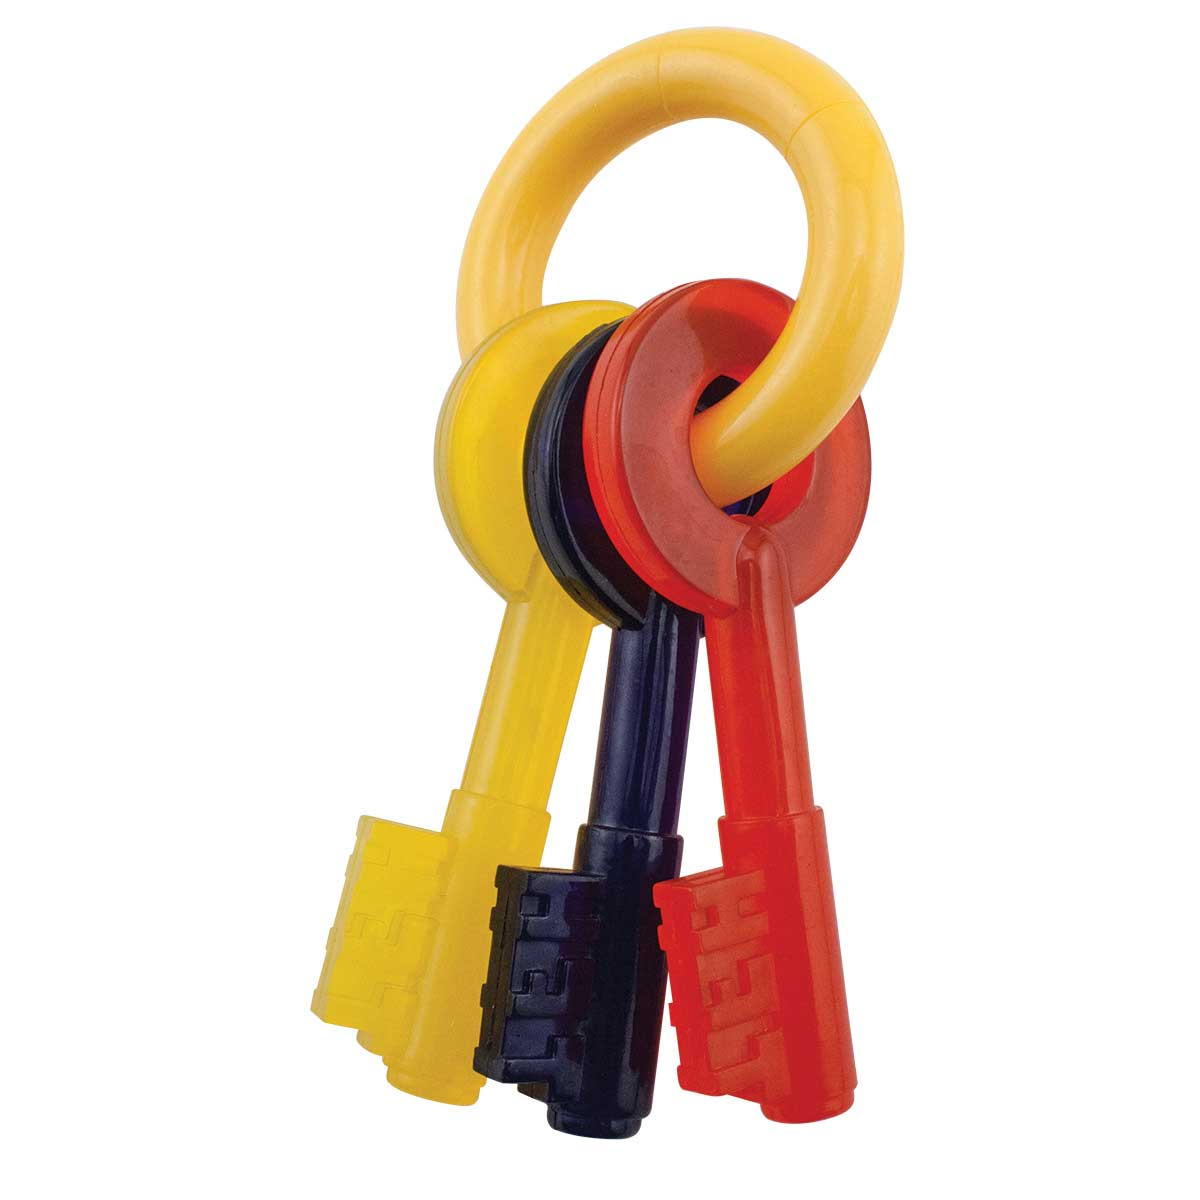 Nylabone Small Key Ring and Teething Keys for Puppies